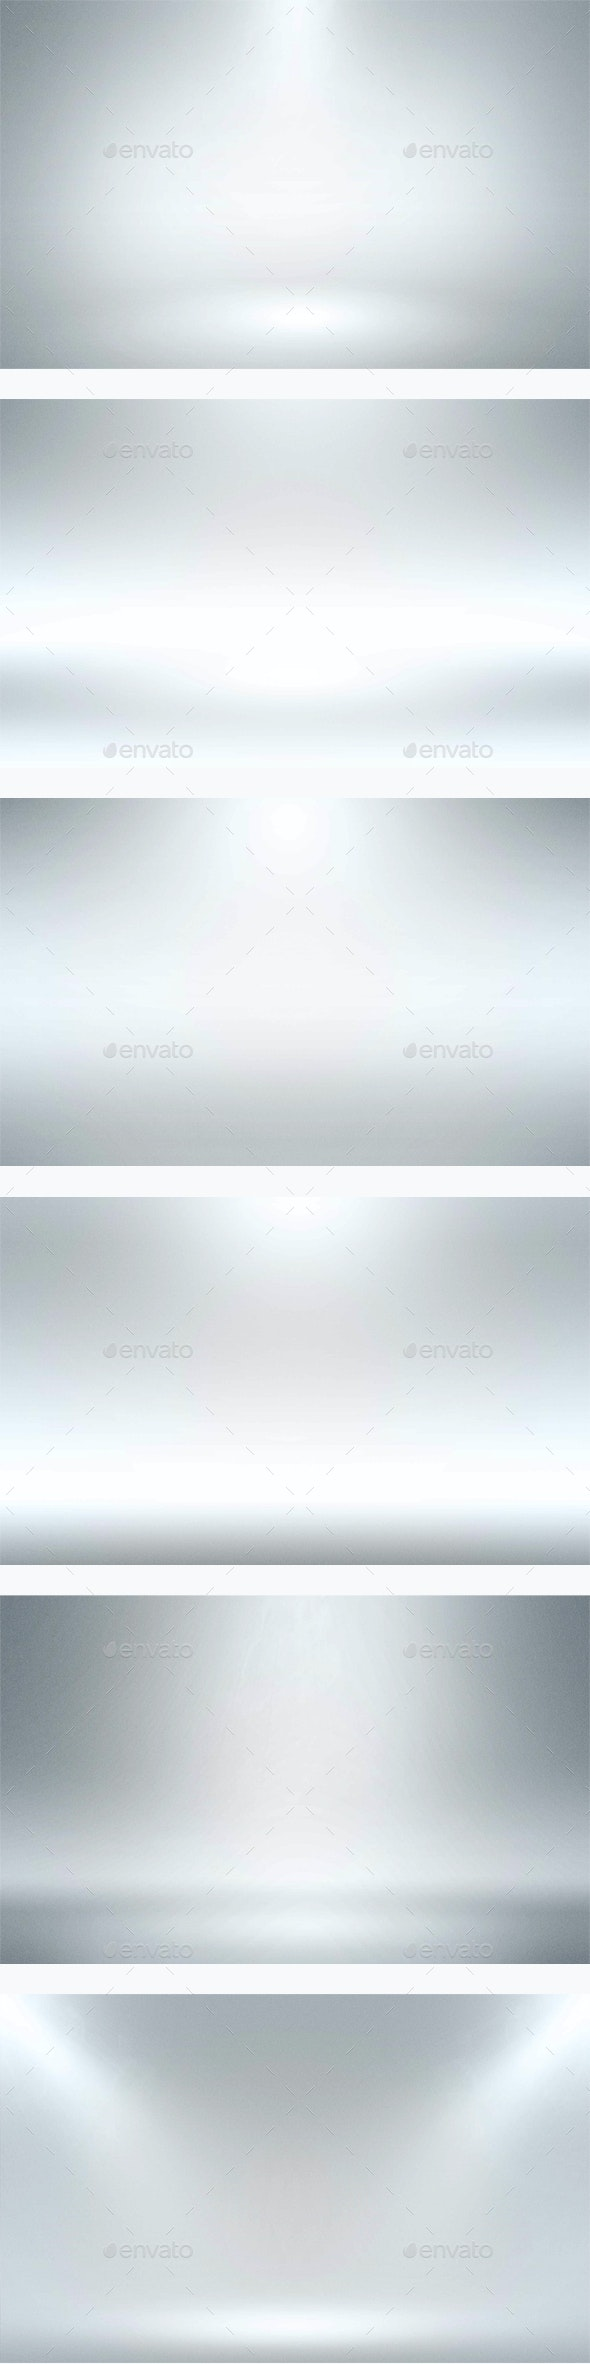 Infinite White Floor Spotlight Backgrounds